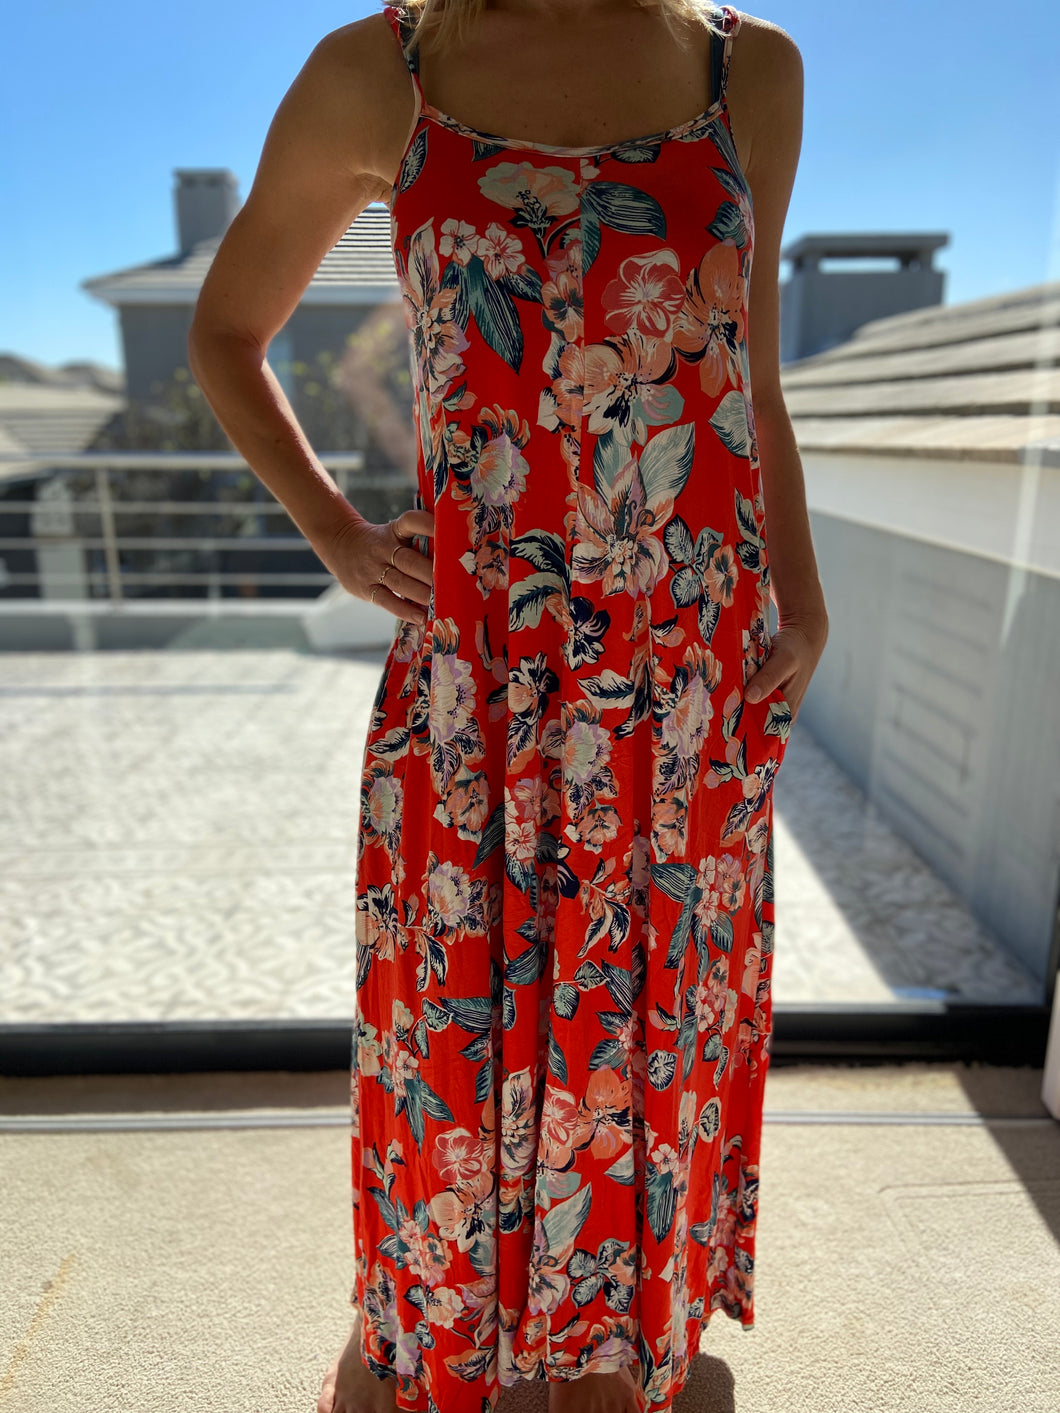 Freda and Dick Celine dress - Red floral